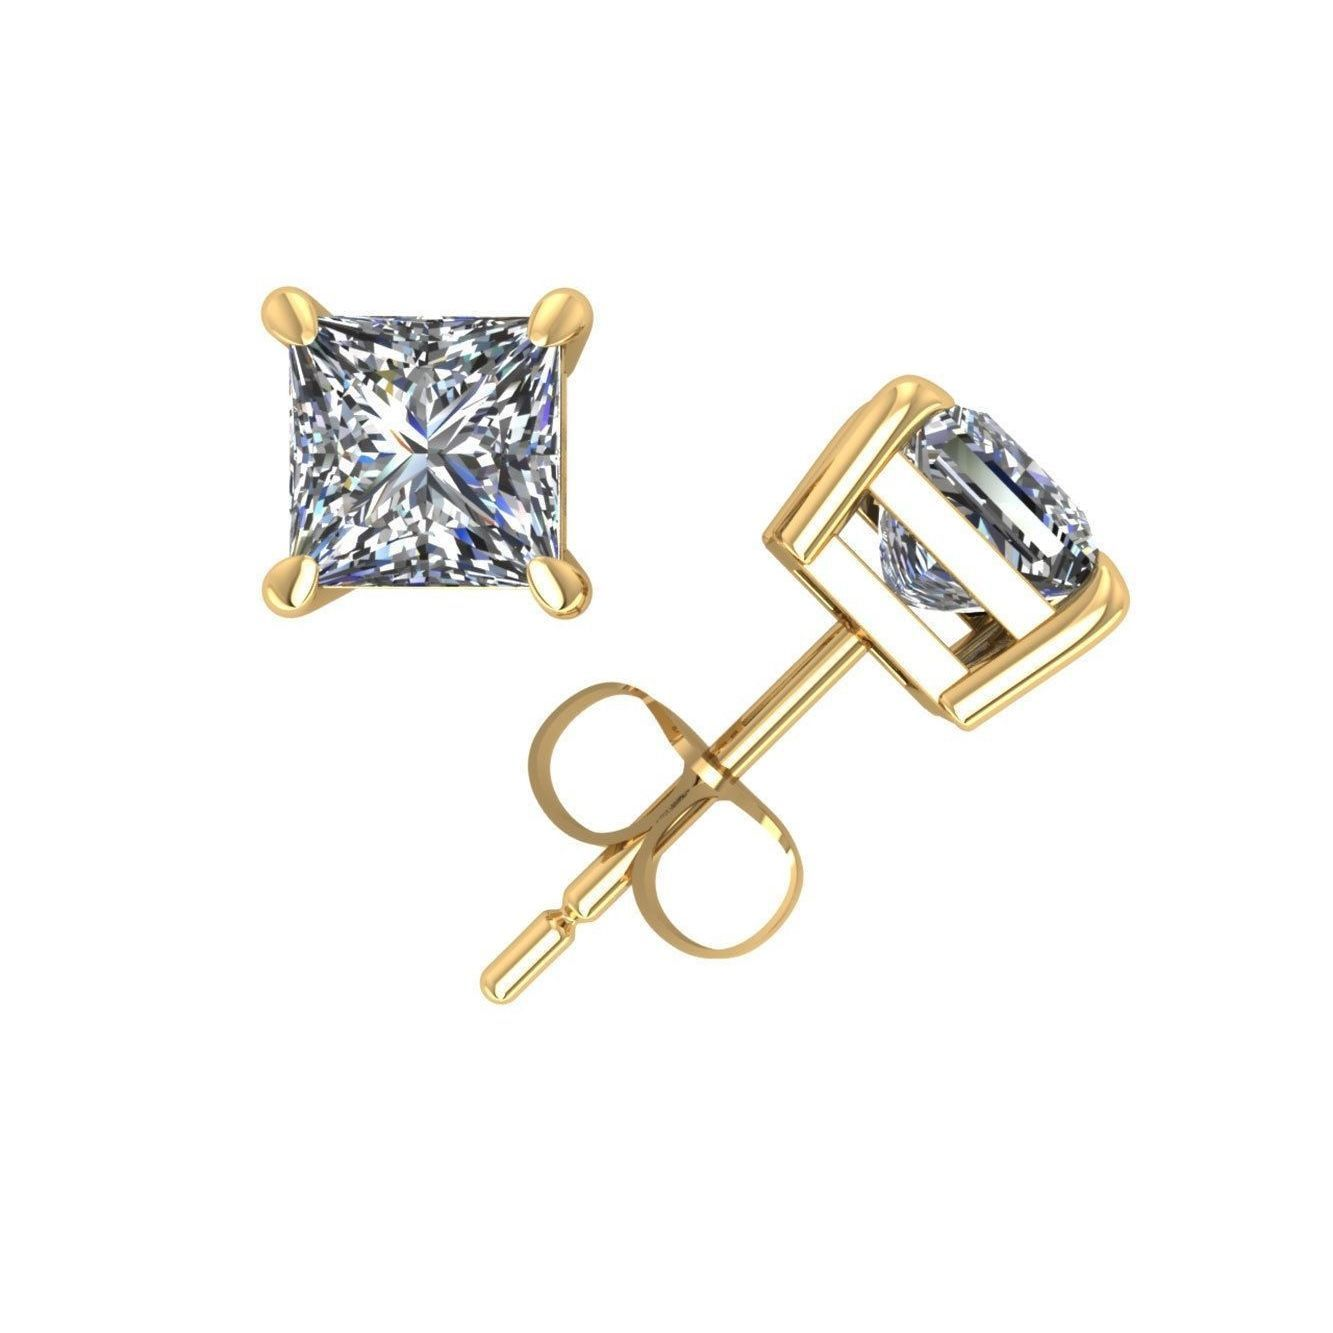 Trillion Designs 10k Yellow Gold 1 70 Carat Princess Cubic Zirconia Stud Earrings With Screw Back Stud Earrings Gold Jewelry Watches